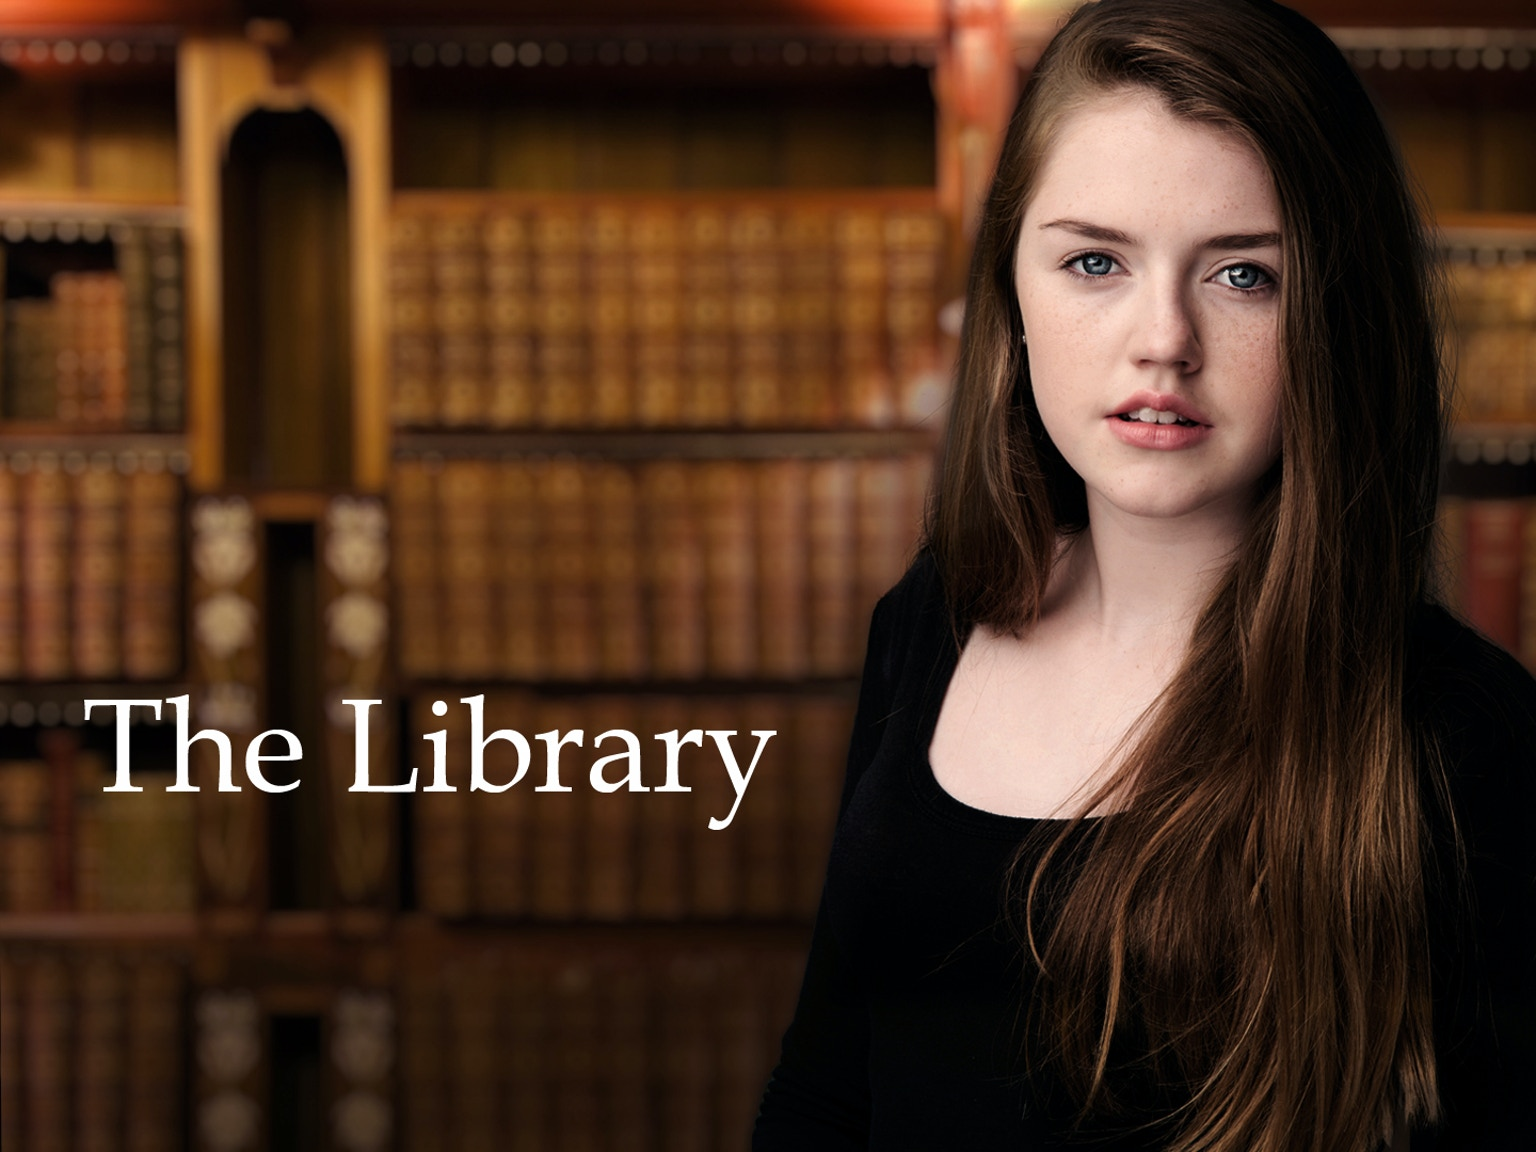 The Library (dirigida por Jason LaMotte, 2015)